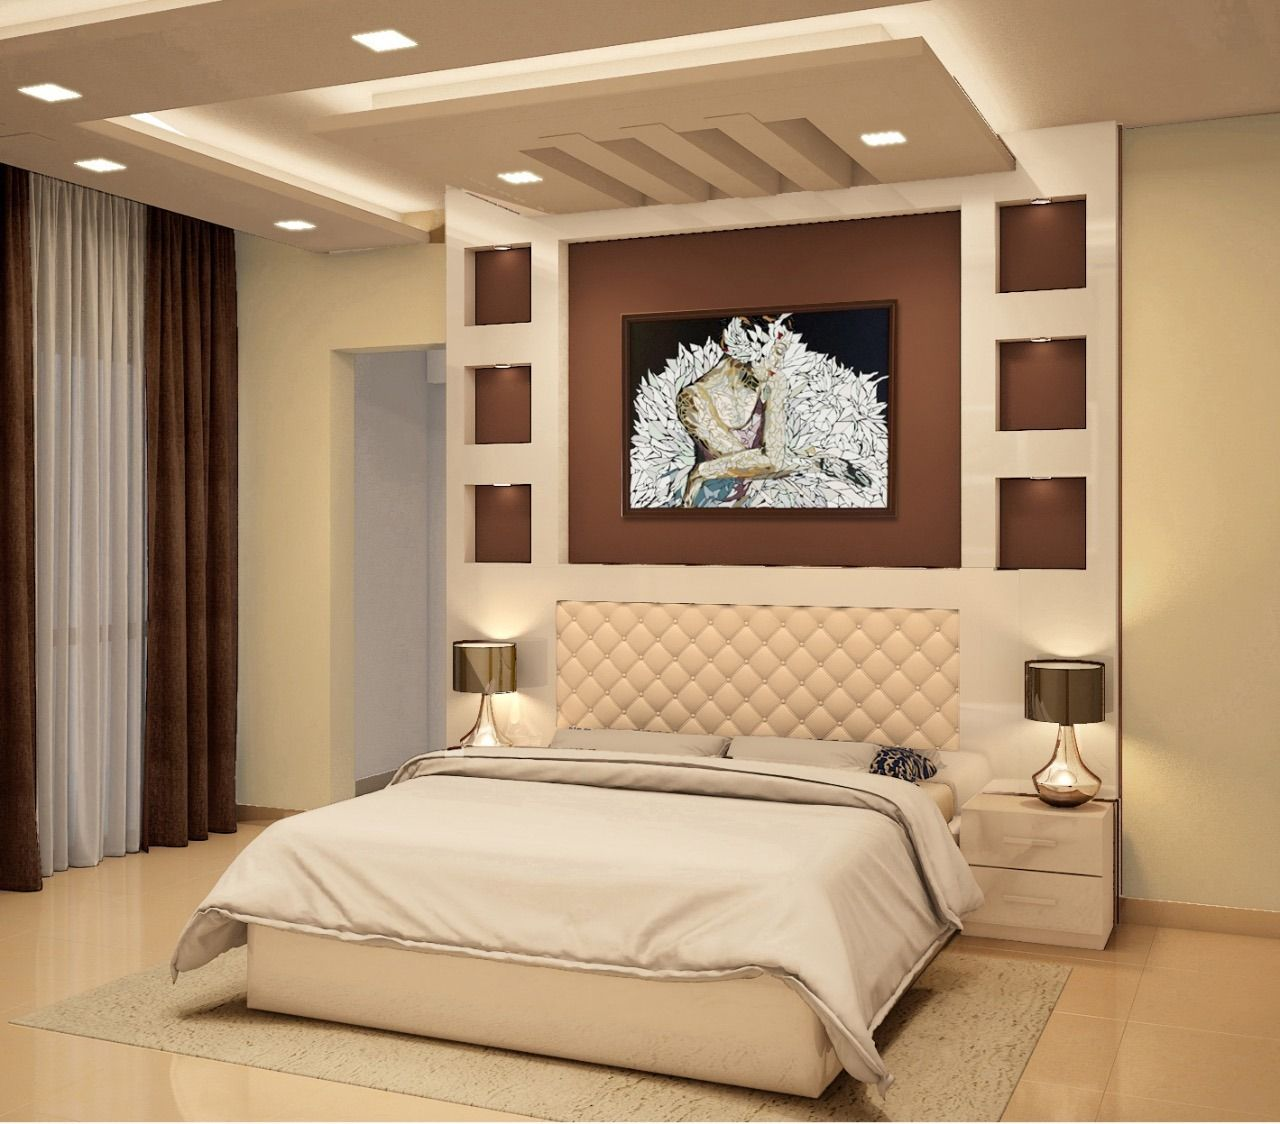 Pin By Bharathi On Niml Bedrooms Lookbook Bedroom False Ceiling Design Ceiling Design Bedroom Ceiling Design Living Room